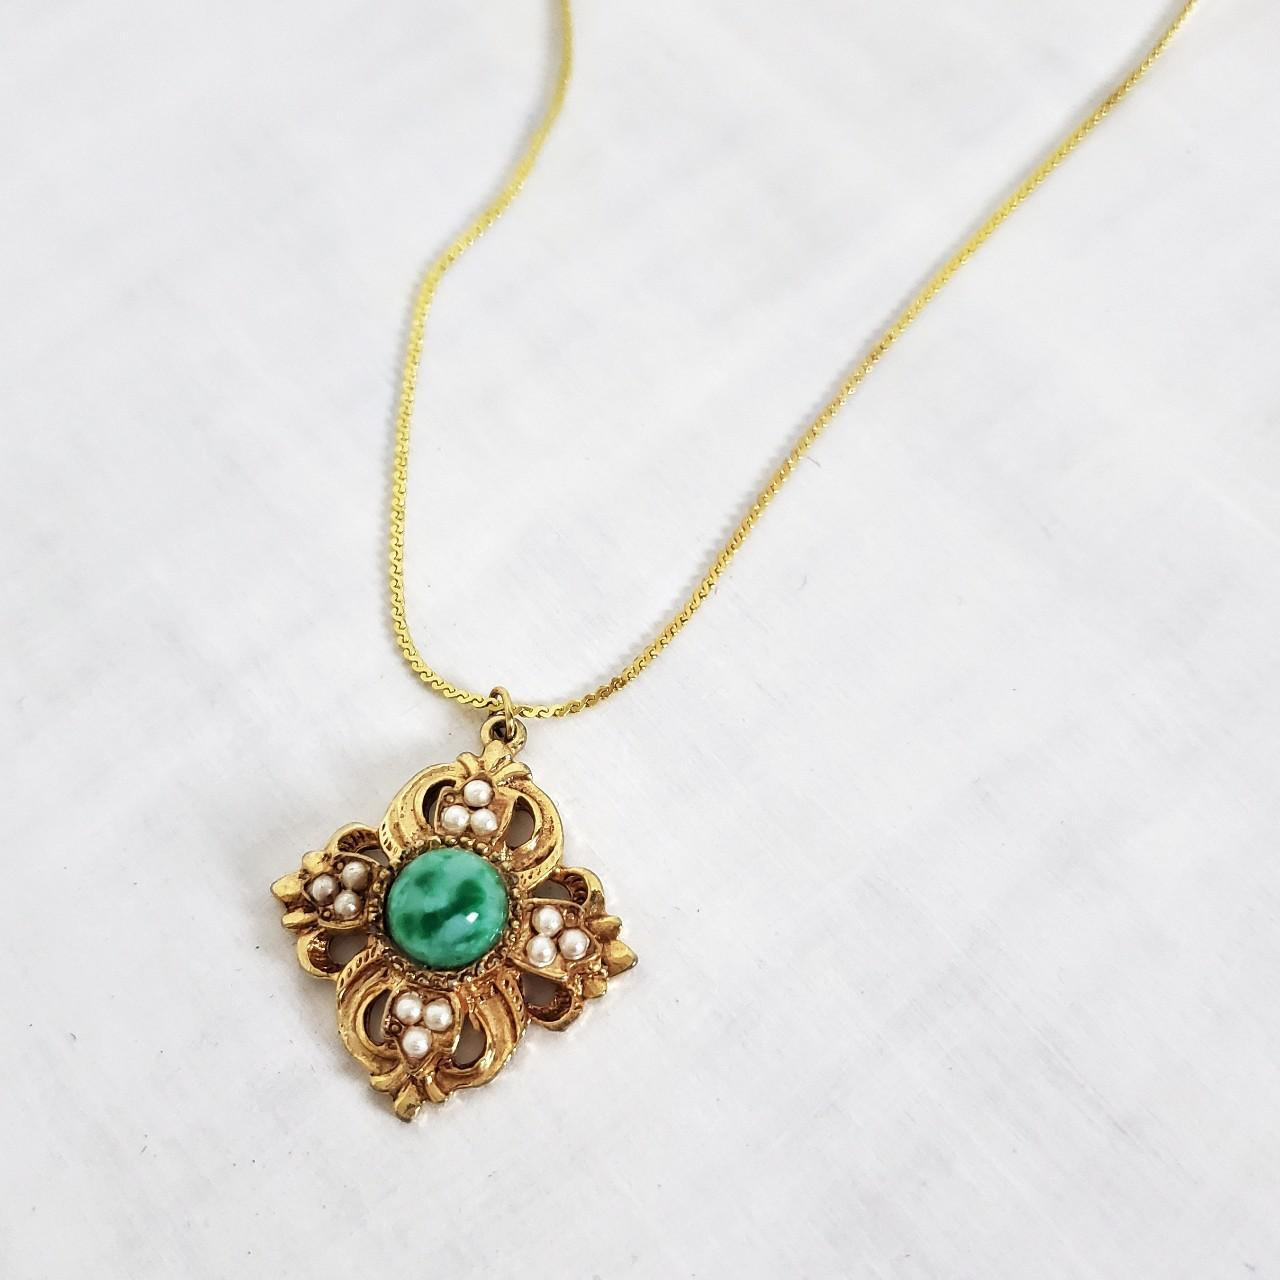 Product Image 1 - Vintage gold flat chain necklace